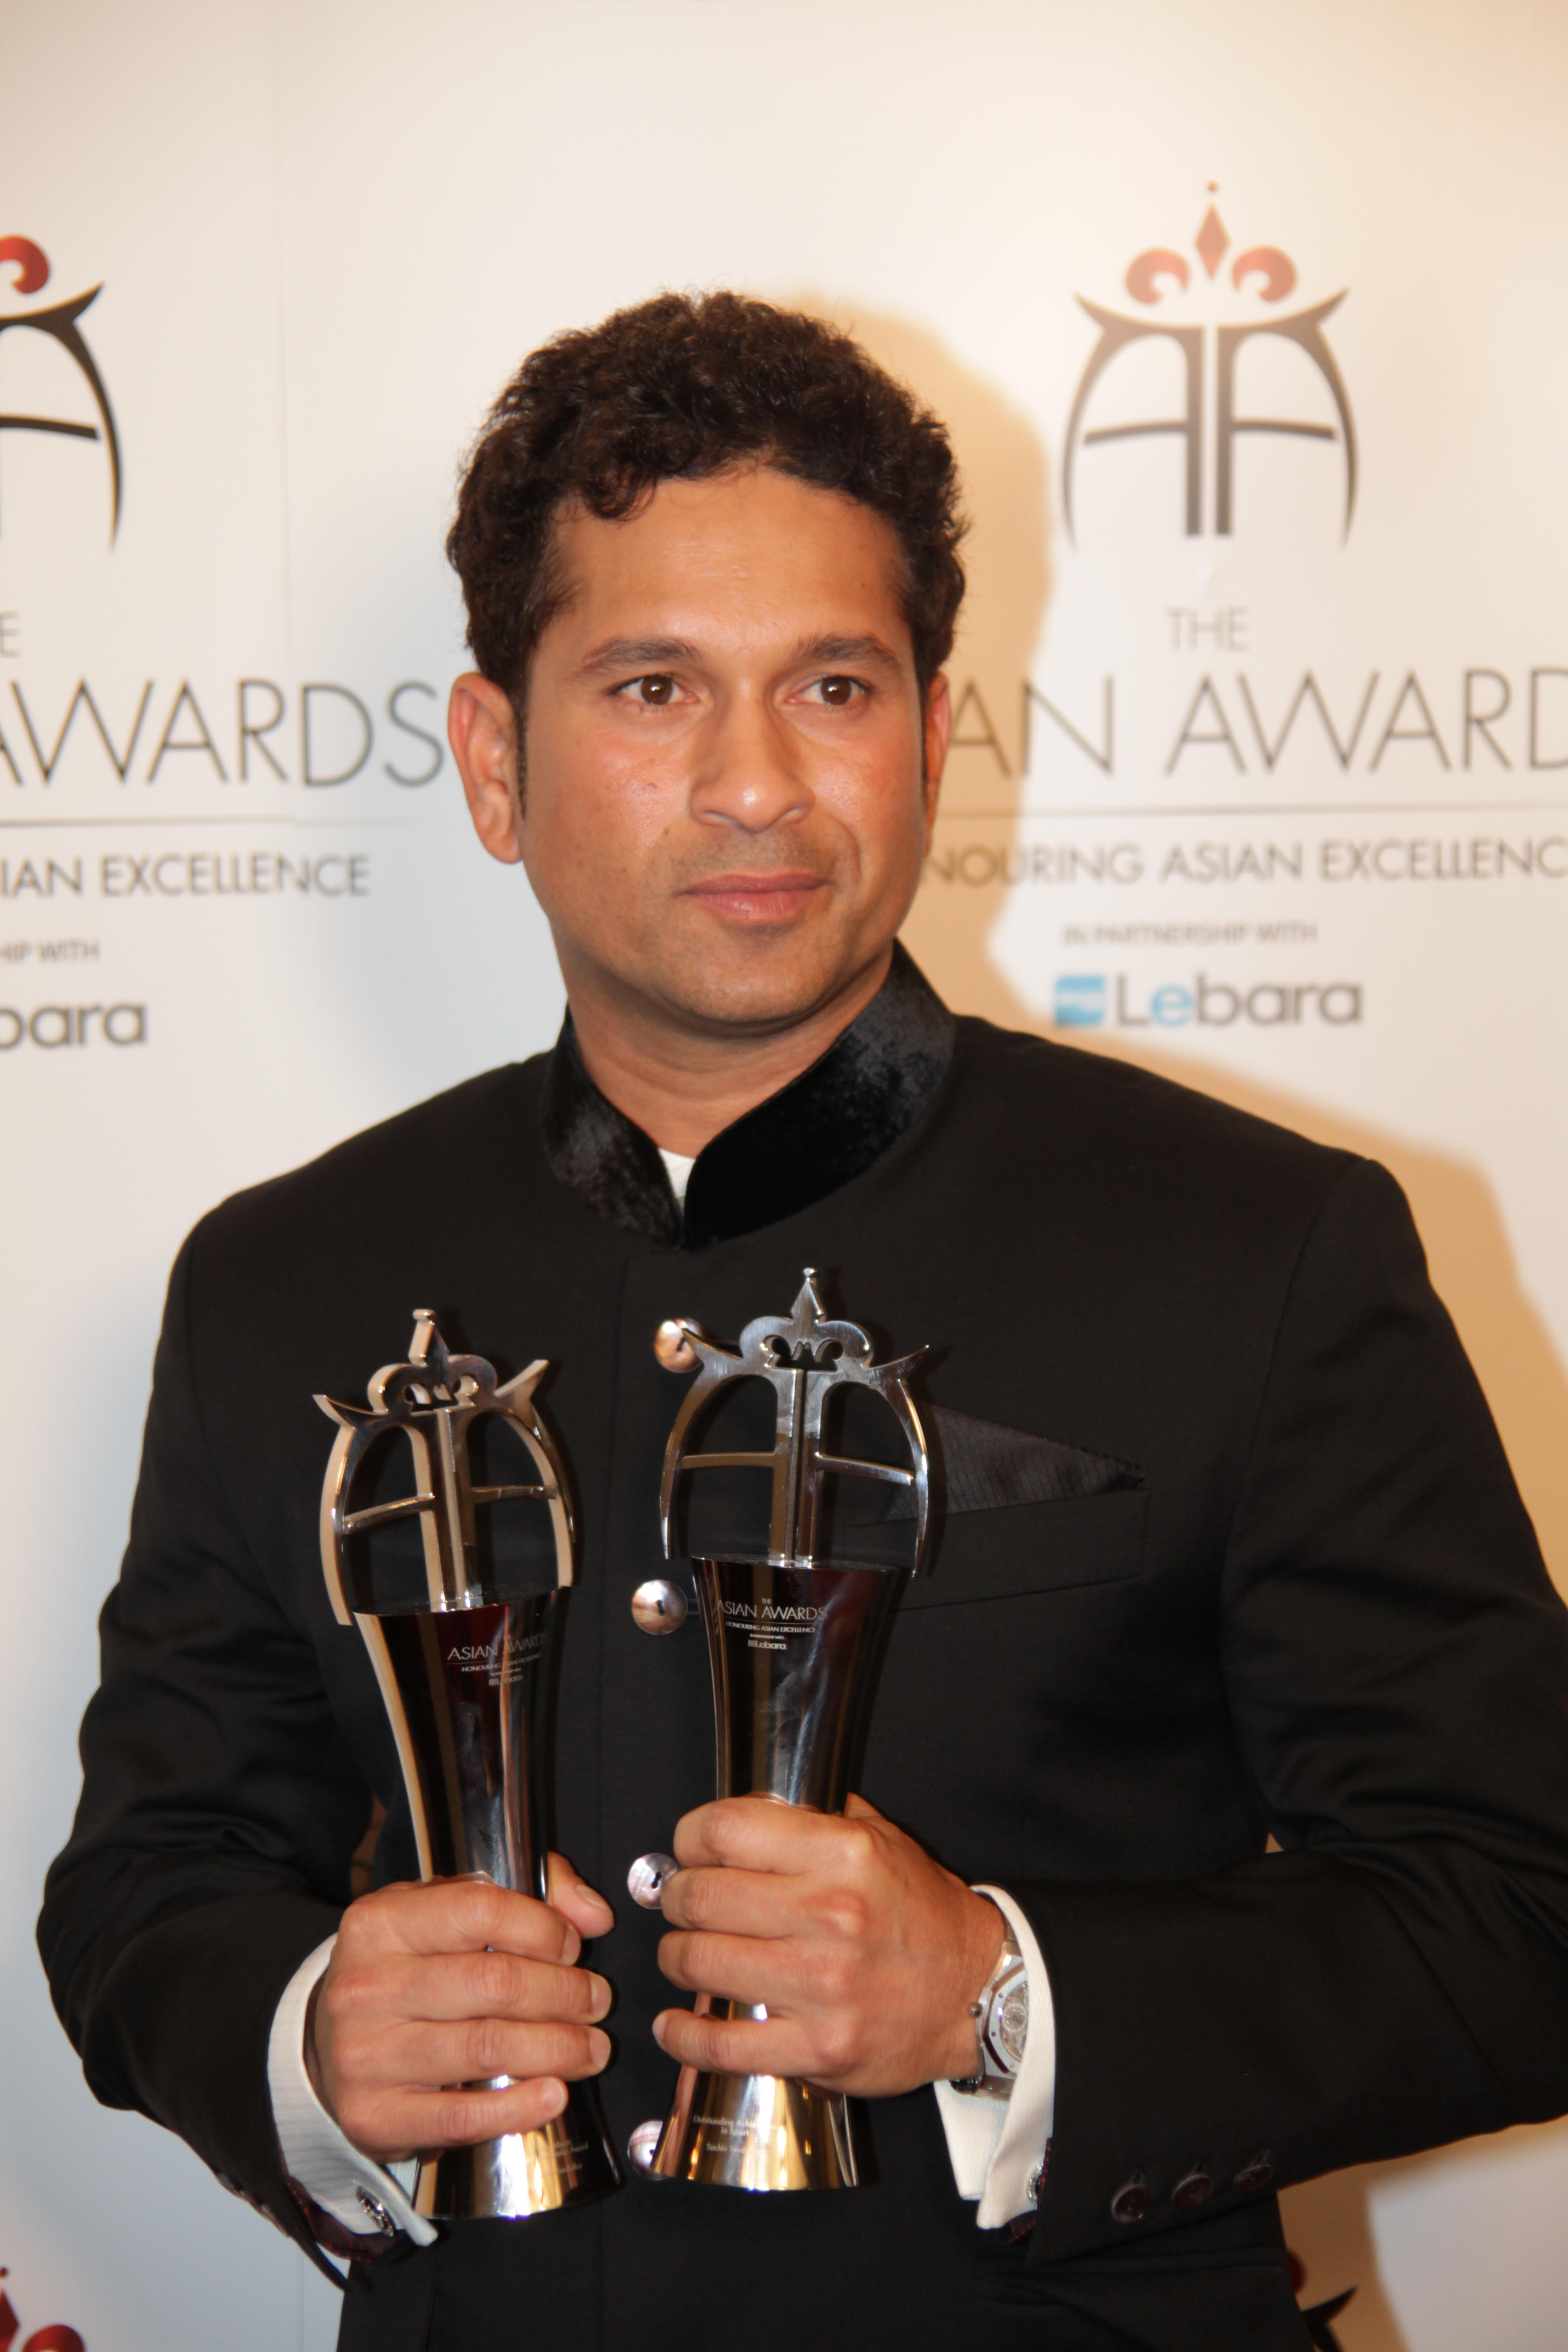 Sachin Tendulkar to get highest honour at Asian Awards